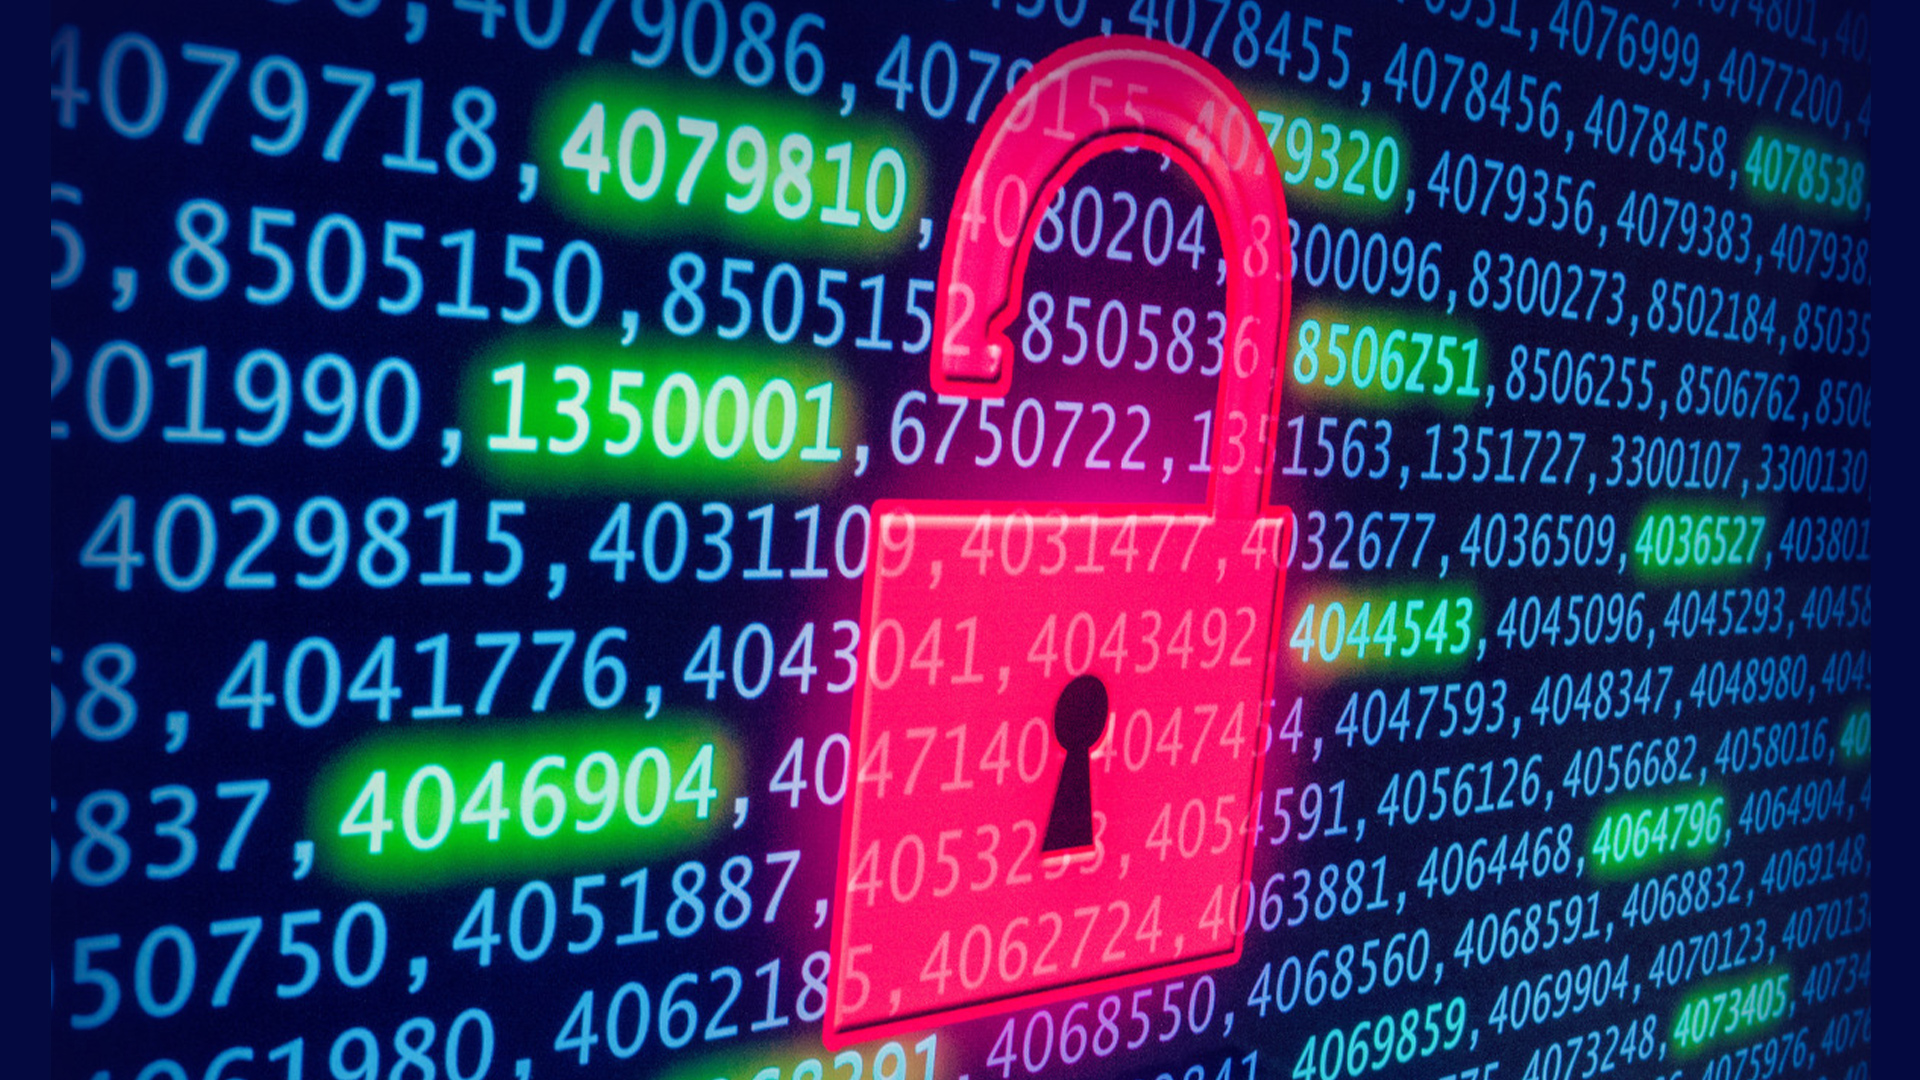 Preventing your Account from Getting Hacked